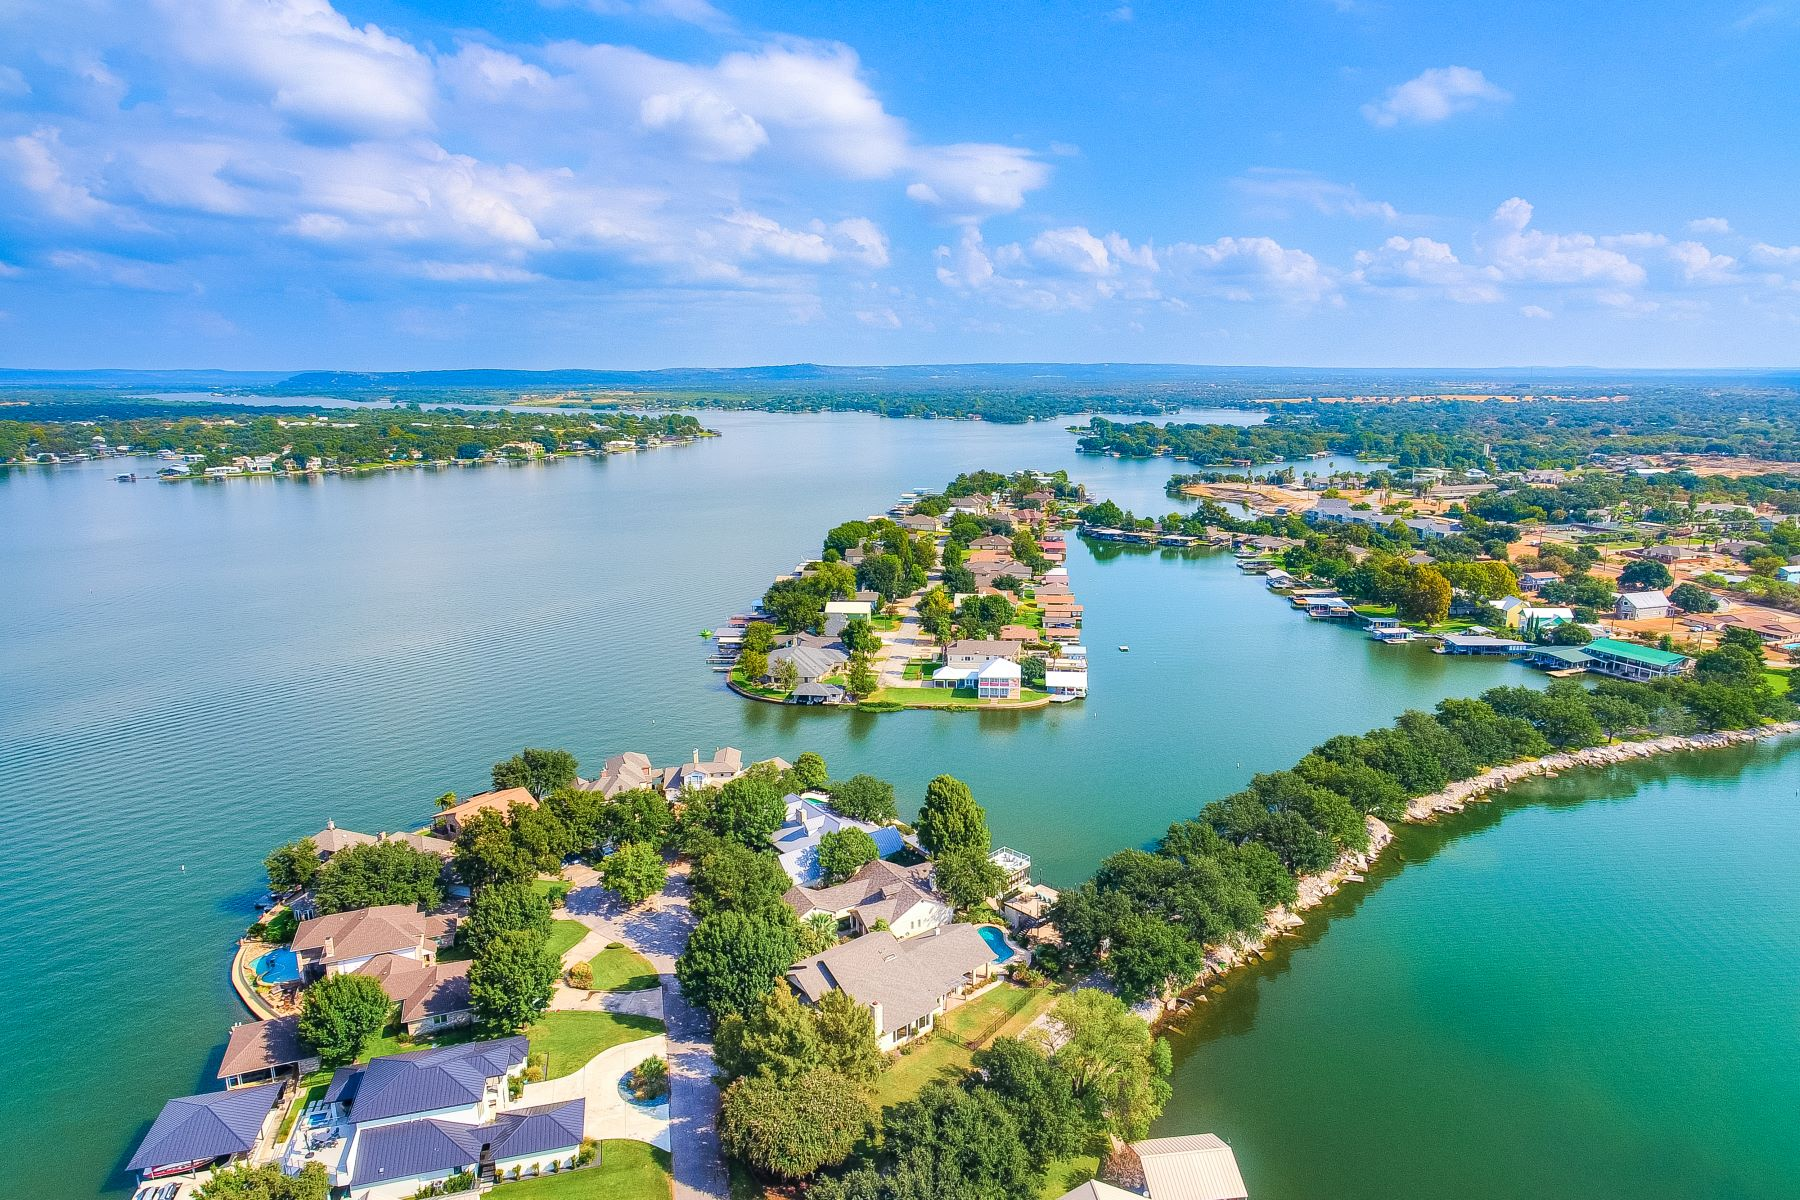 Single Family Homes for Sale at Wonderful Lake House on Beaver Island 48 Beaver Island Granite Shoals, Texas 78654 United States